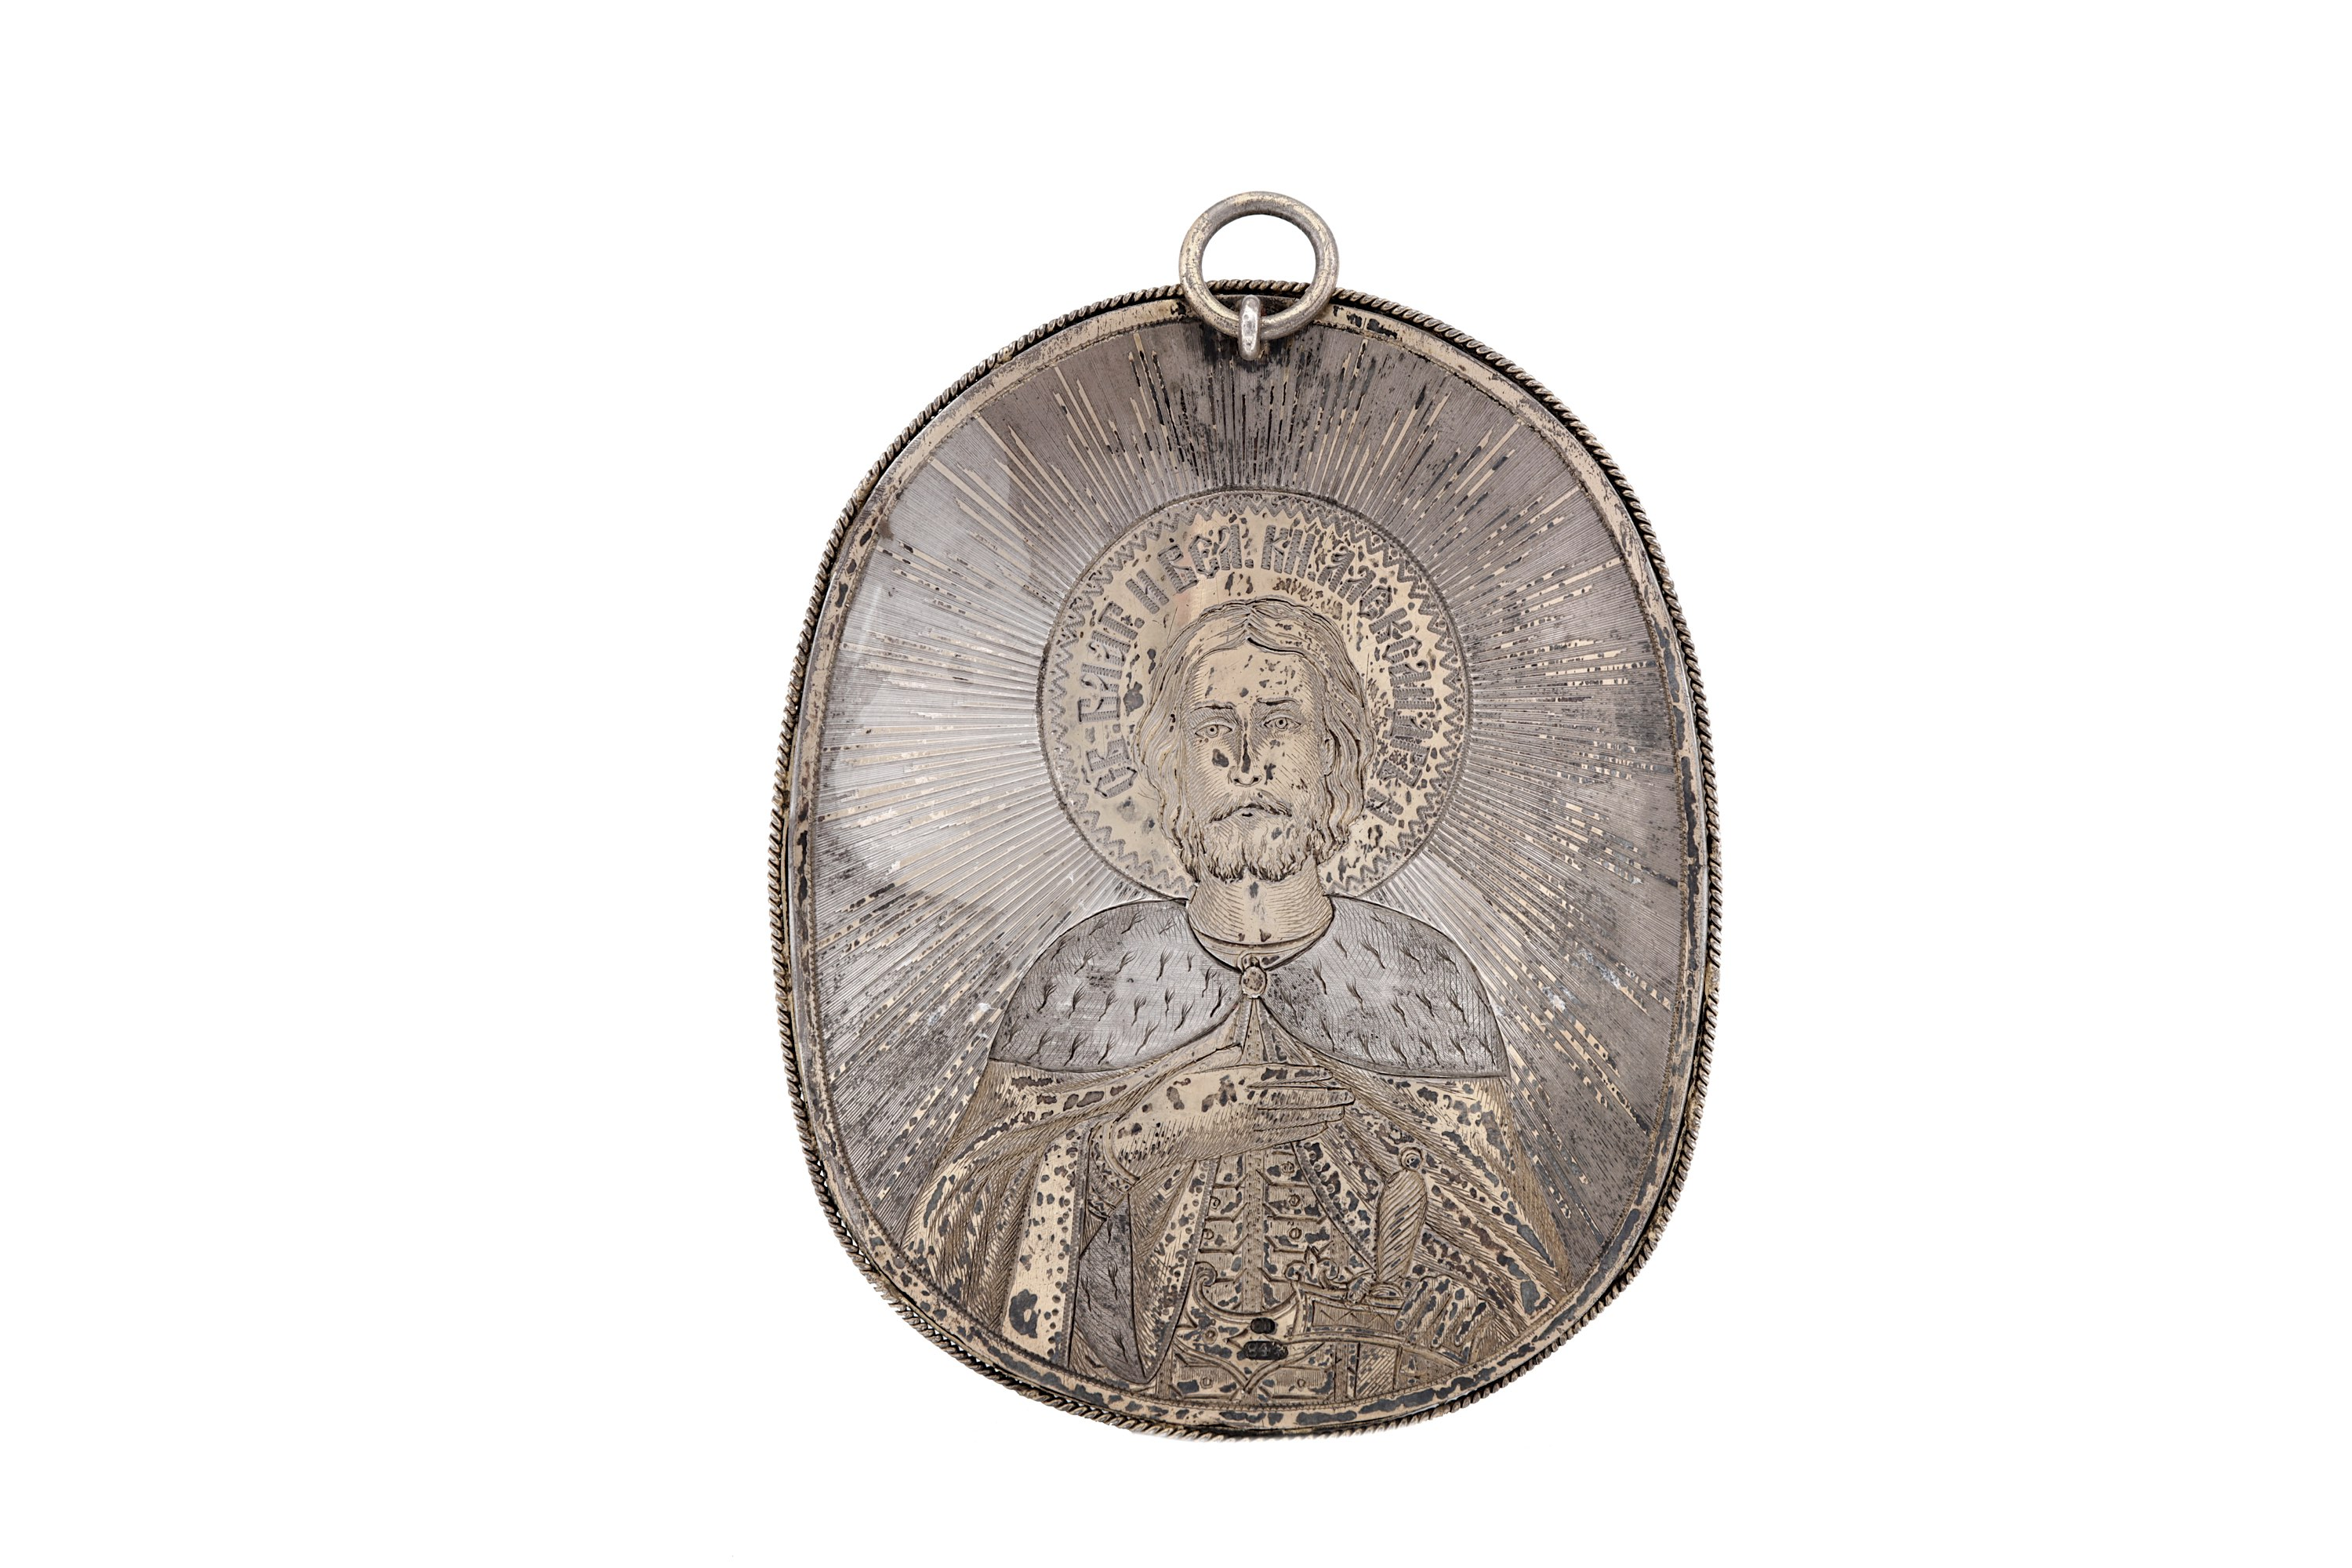 Lot 35a - A late 19th century Russian 84 zolotnik silver and porcelain pendant, St Petersburg 1882-1899